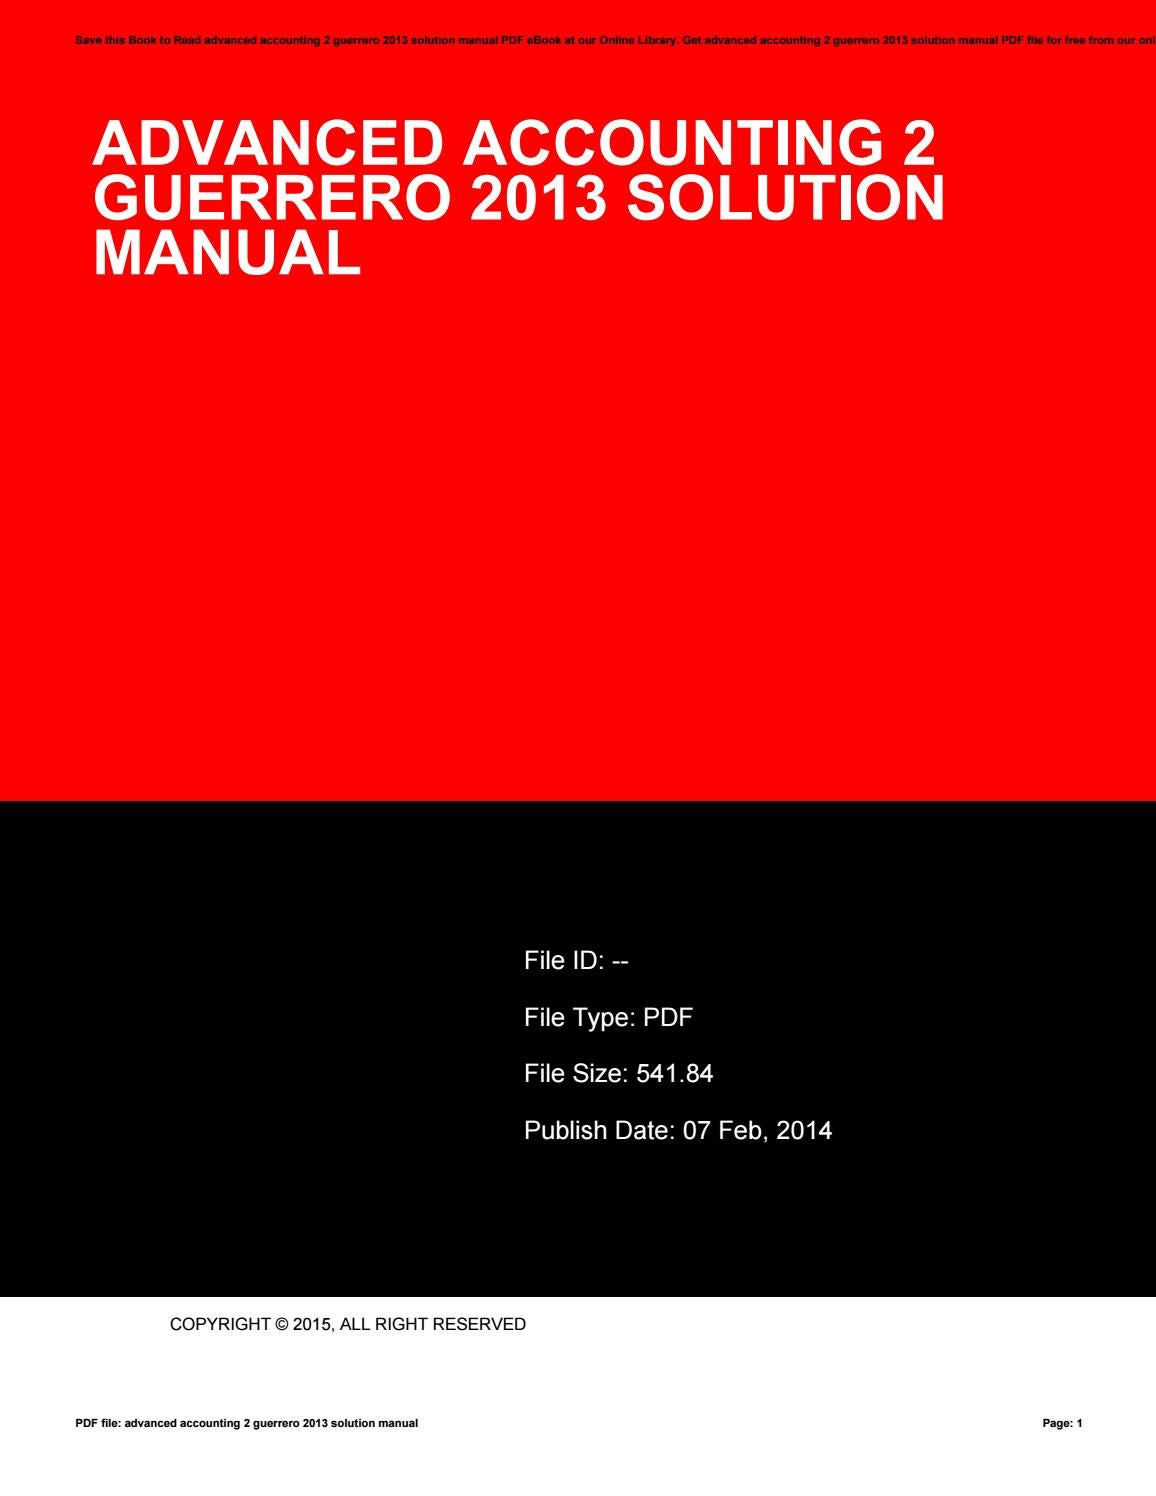 advanced accounting 2 guerrero 2017 solution manual pdf